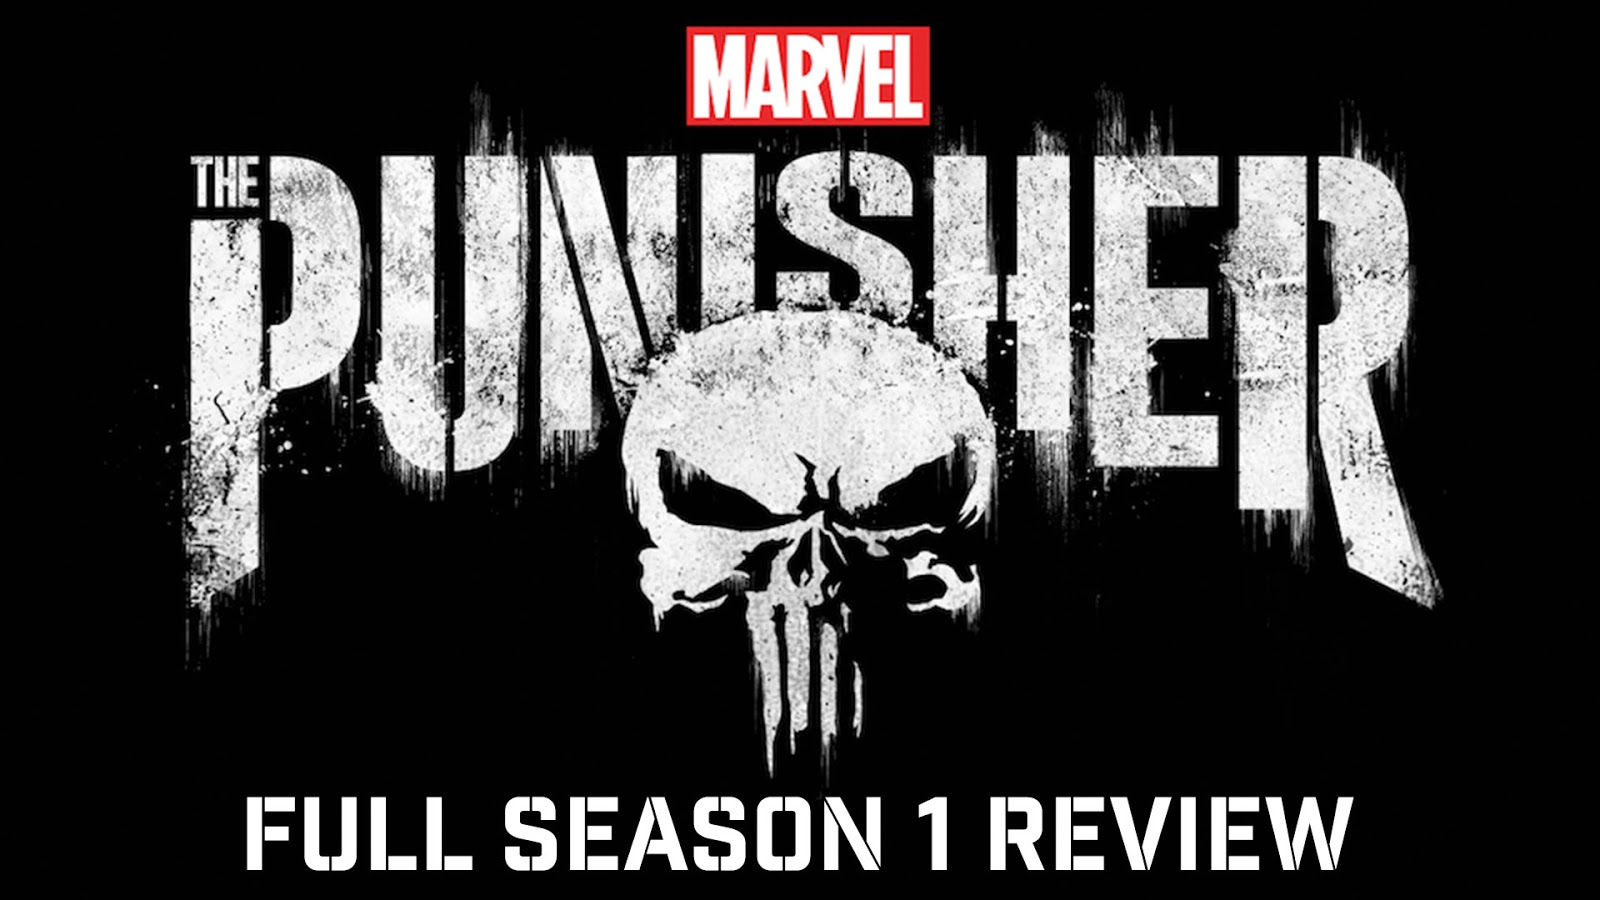 Netflix desktop Marvel's The Punisher wallpaper